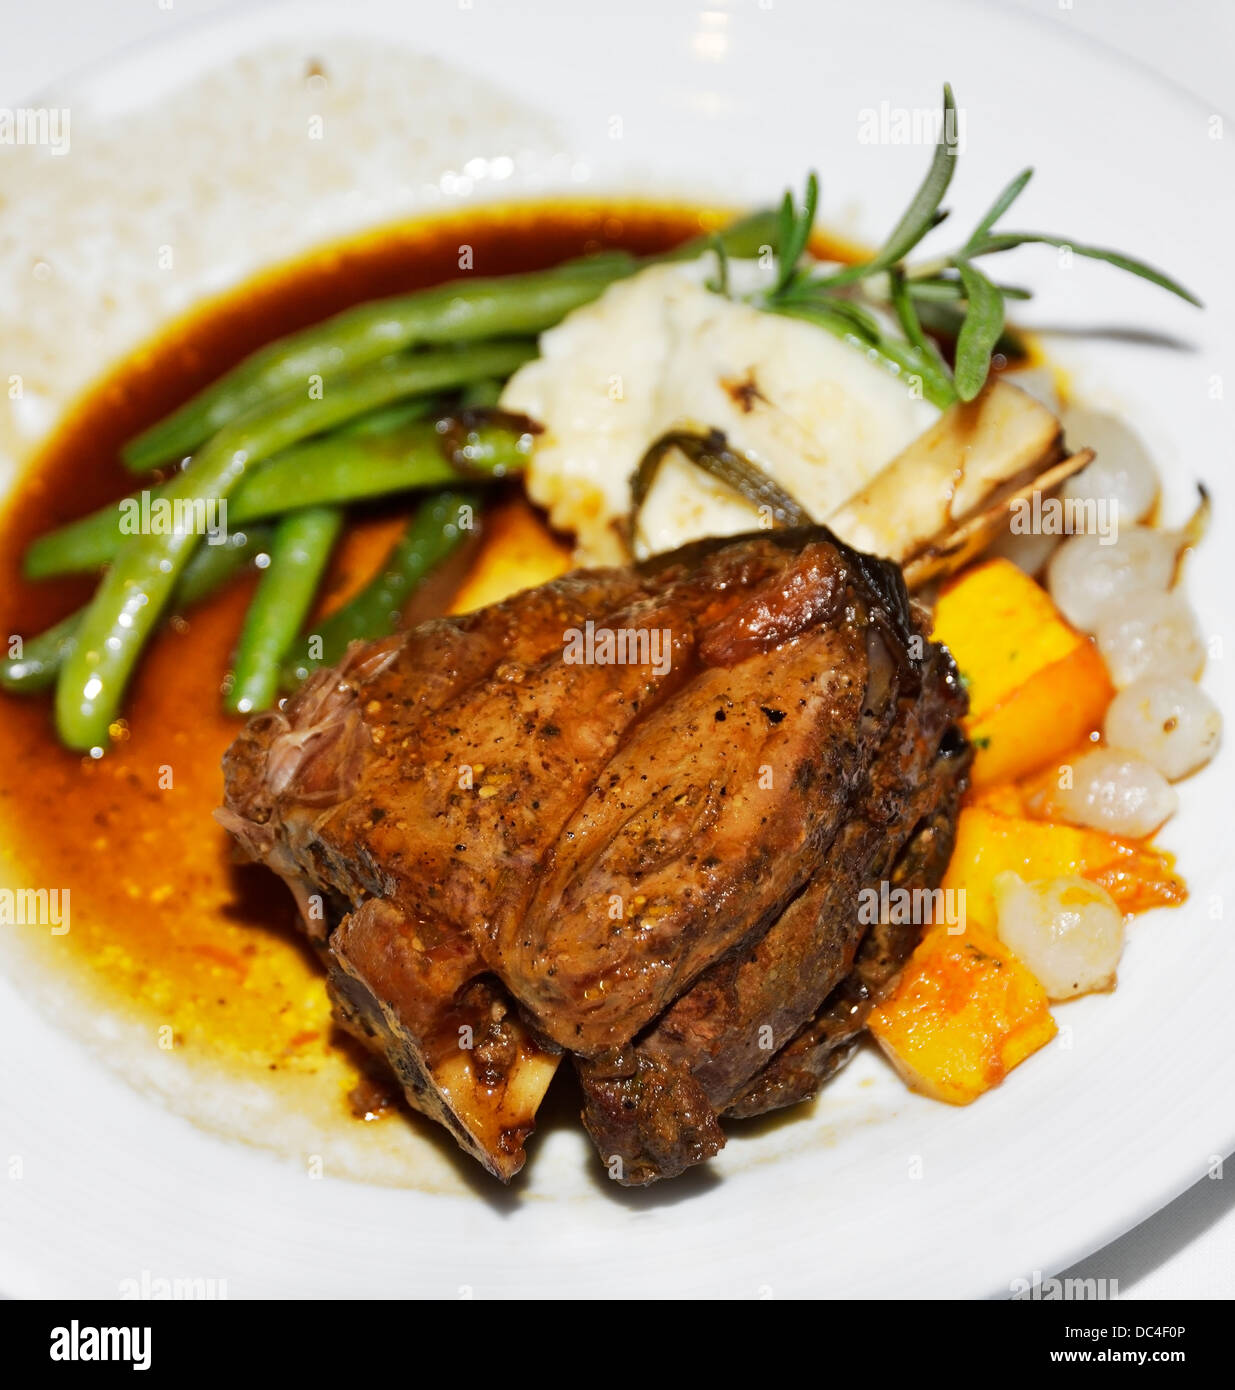 Roasted Lamb Shank With Vegetables Stock Photo, Royalty Free Image ... for Roasted Lamb Shank  131fsj